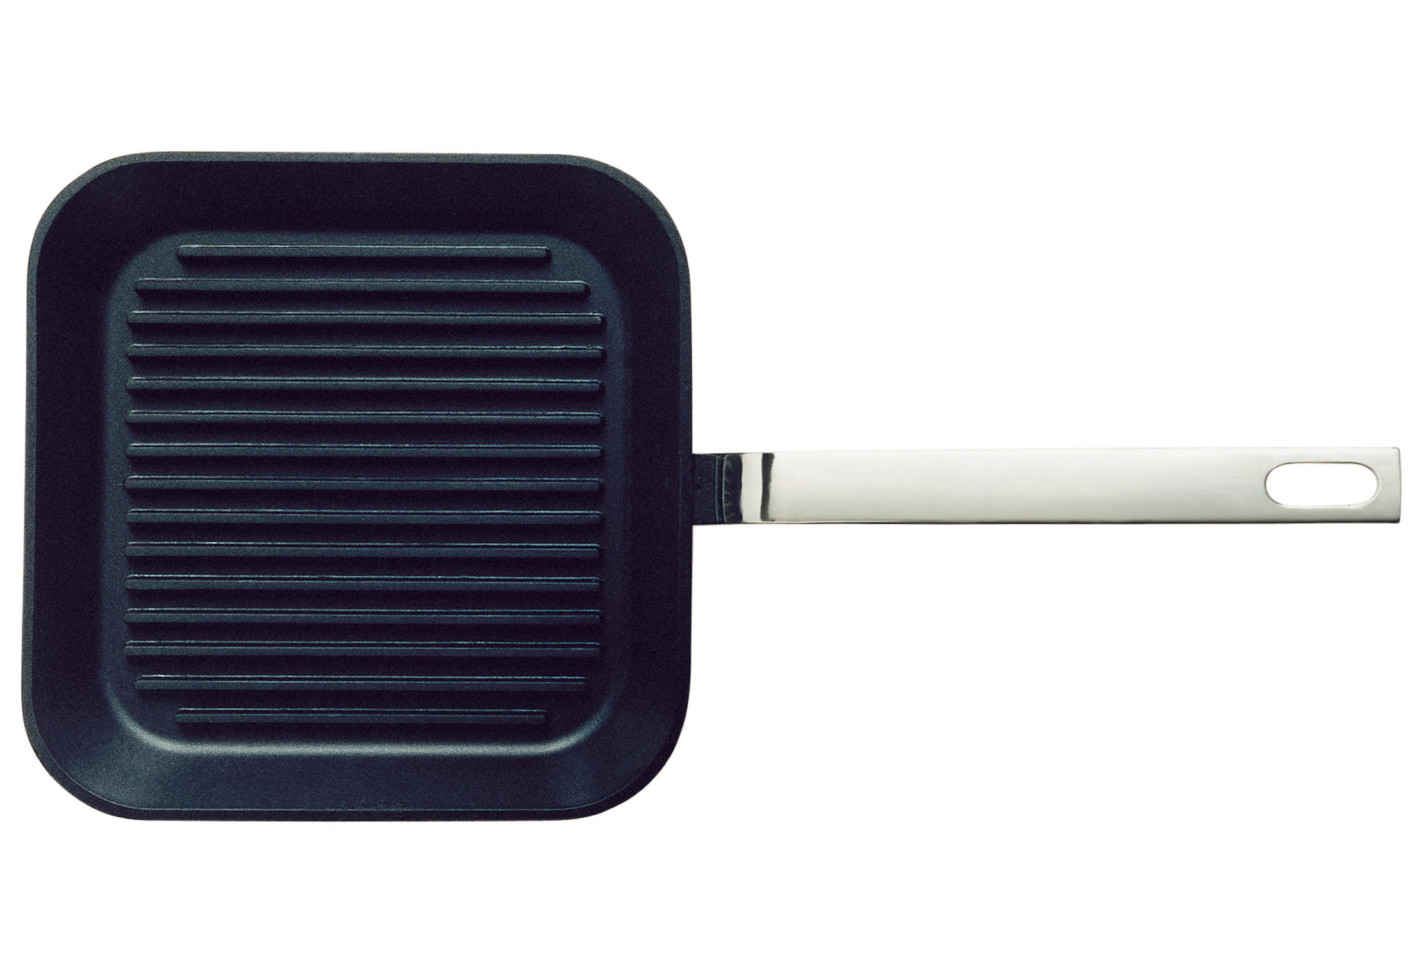 Tools grill pan by Iittala STYLEPARK : tools grill pan 1 from www.stylepark.com size 1410 x 971 jpeg 148kB